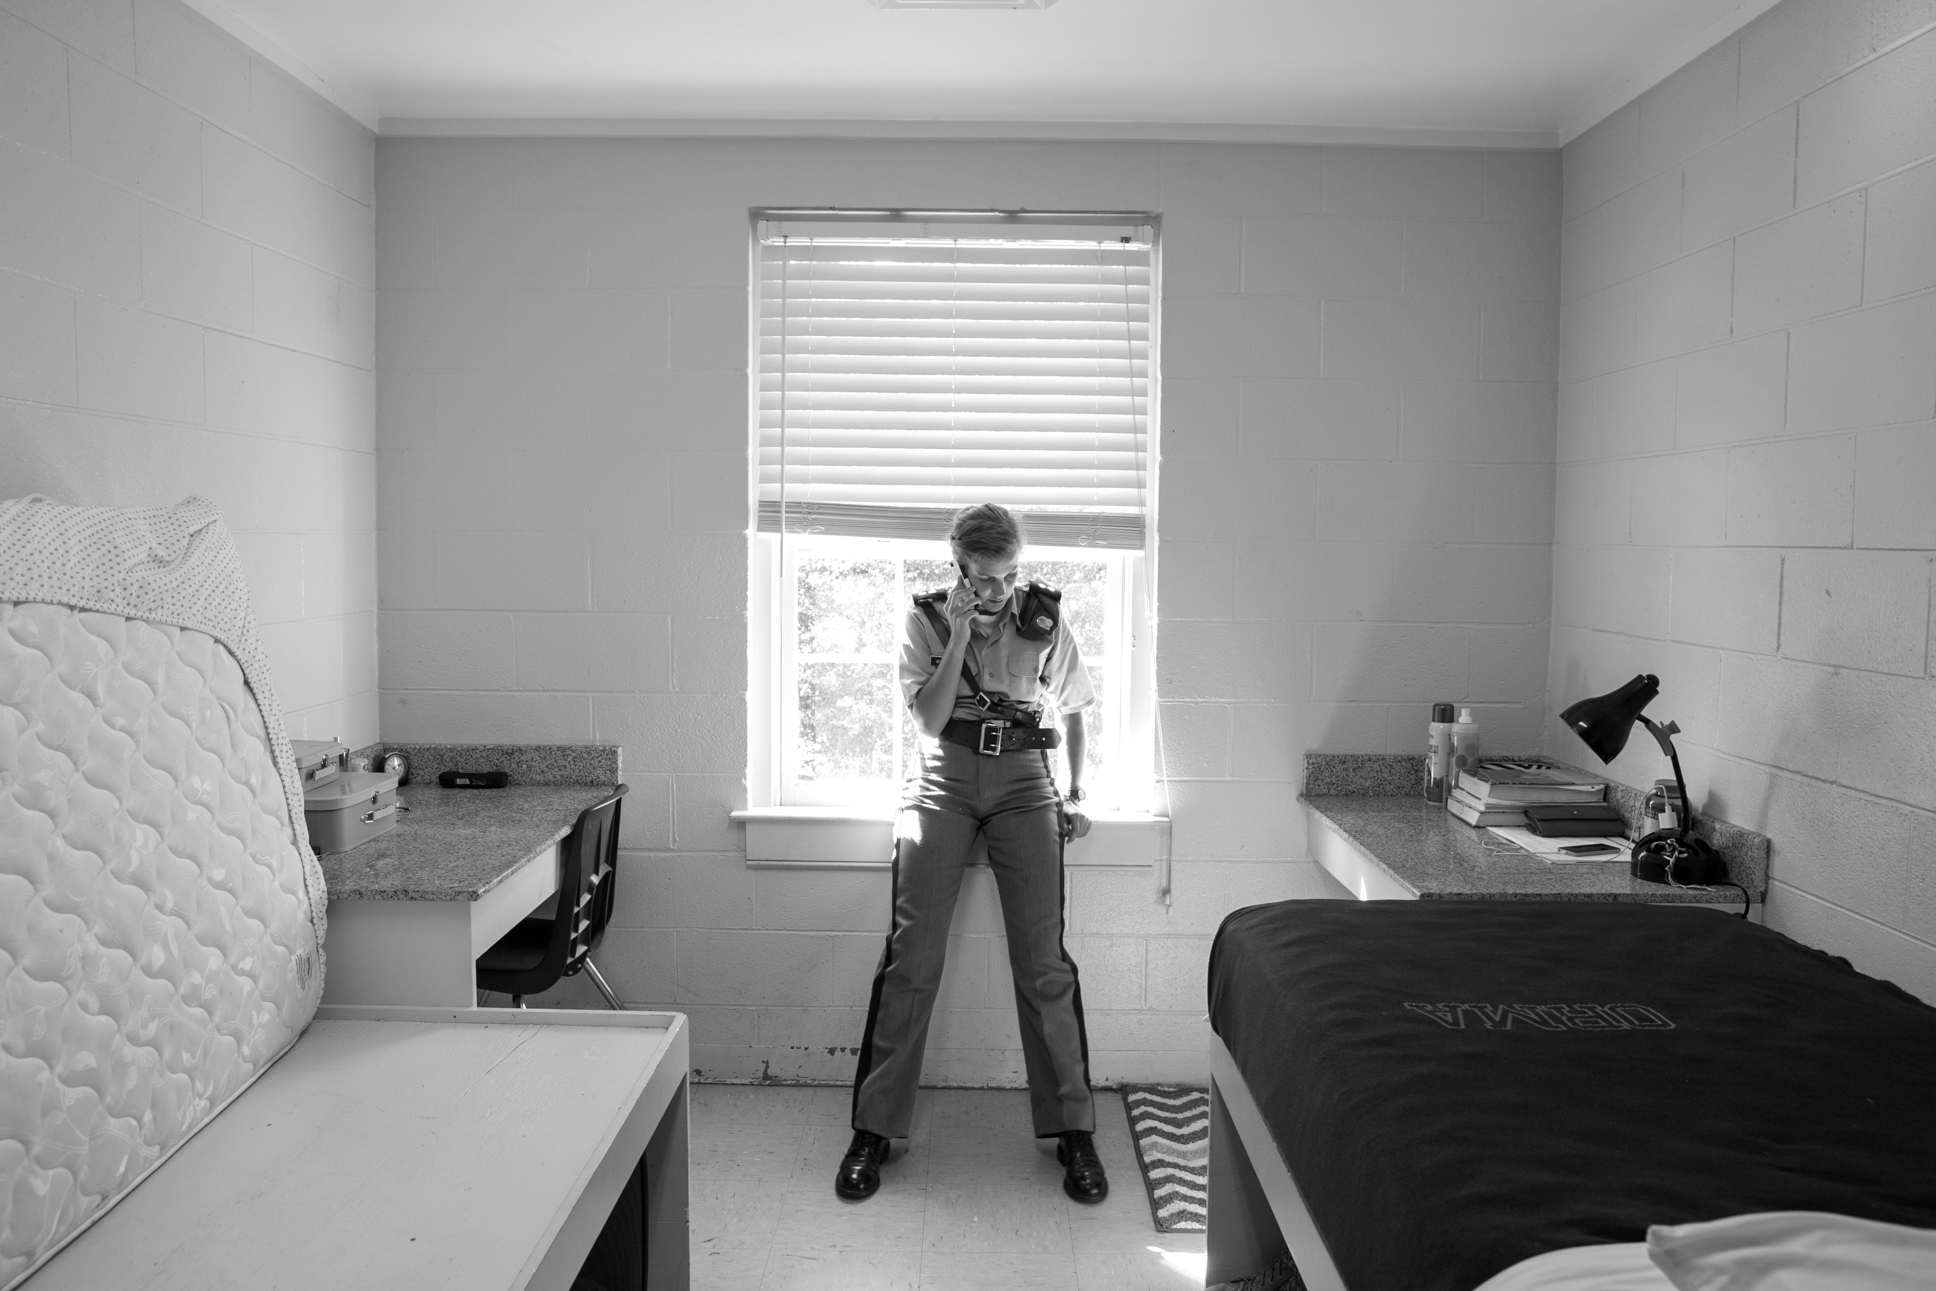 Captain Whitehead, a senior and second in command of the entire platoon, calls her mom in a moment of downtime. The cadets' rooms must remain neat and tidy at all times, and are subject to inspection at a moment's notice.